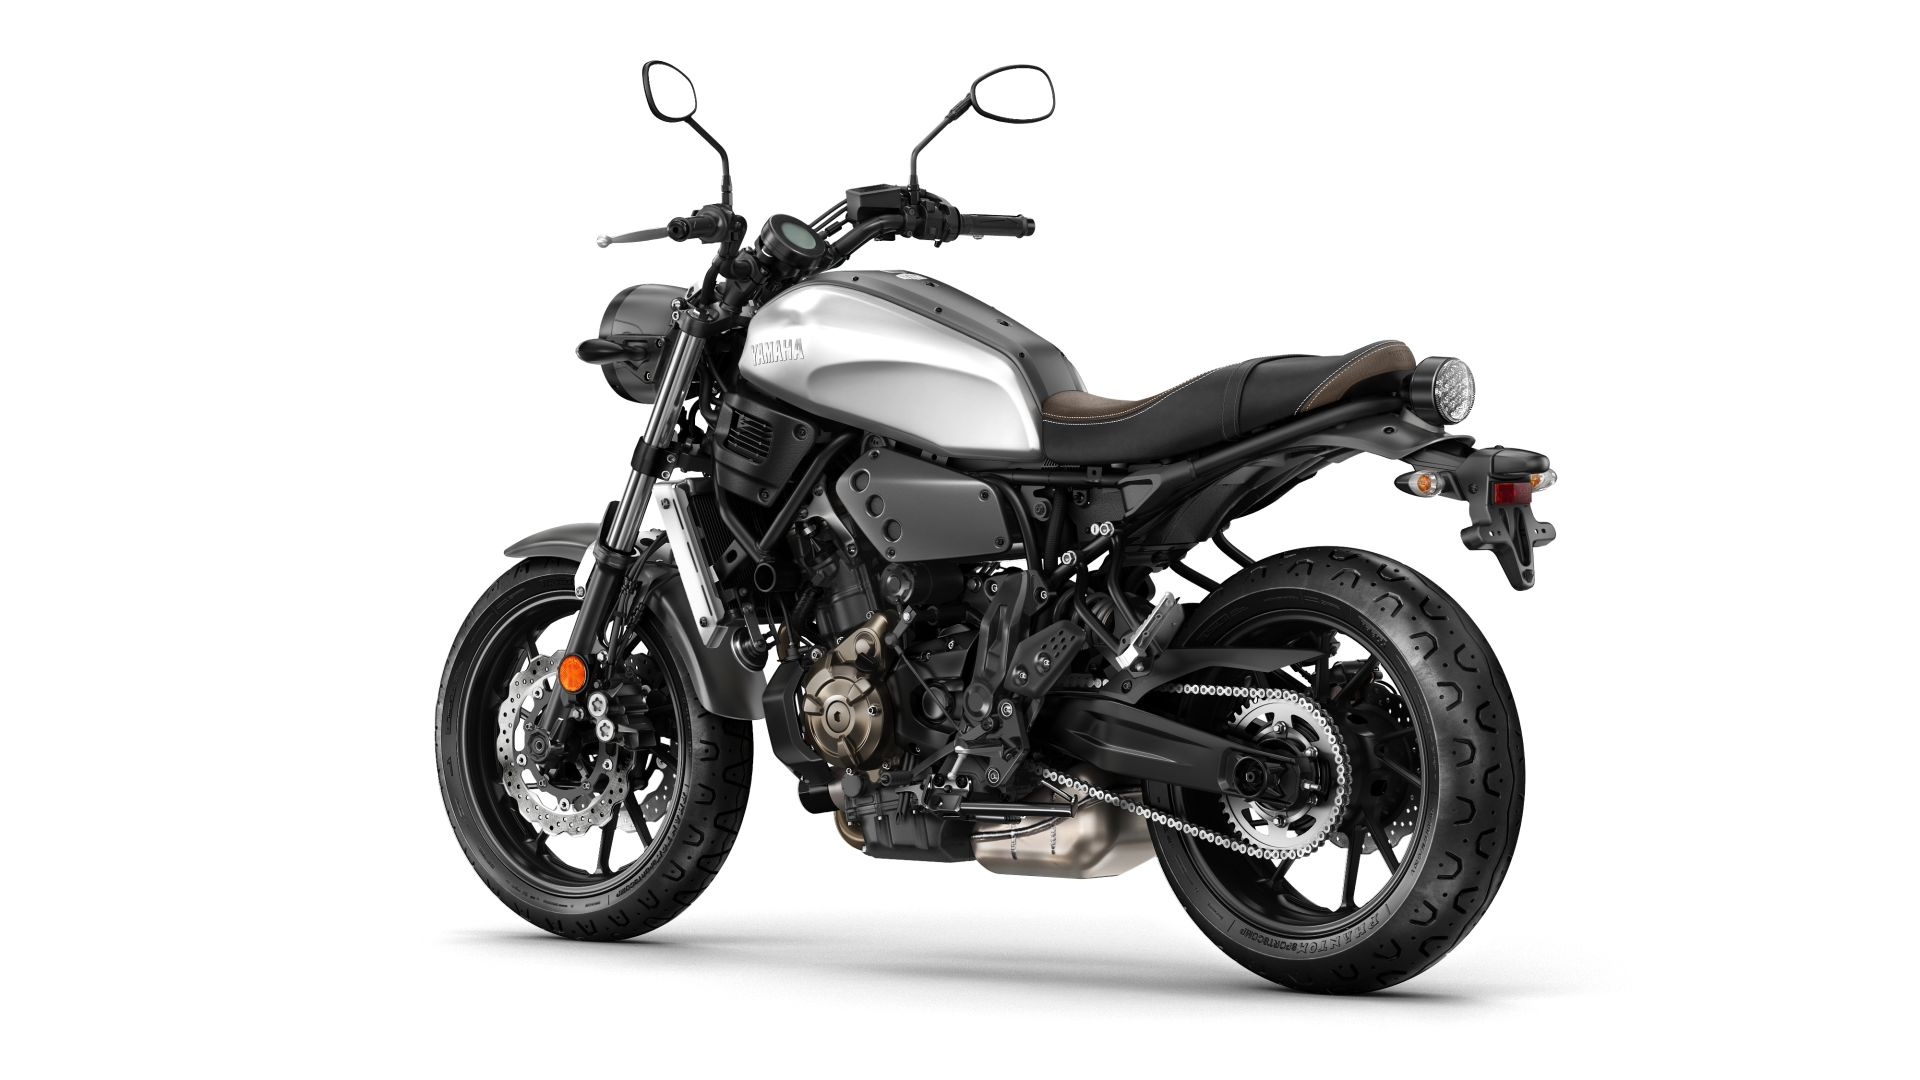 Though Yamaha States That XSR700 Is Also Homage To The Old XS650 Seeing Iwata Not Following Recipe Ducati Used For New Scrambler A Rather Cool